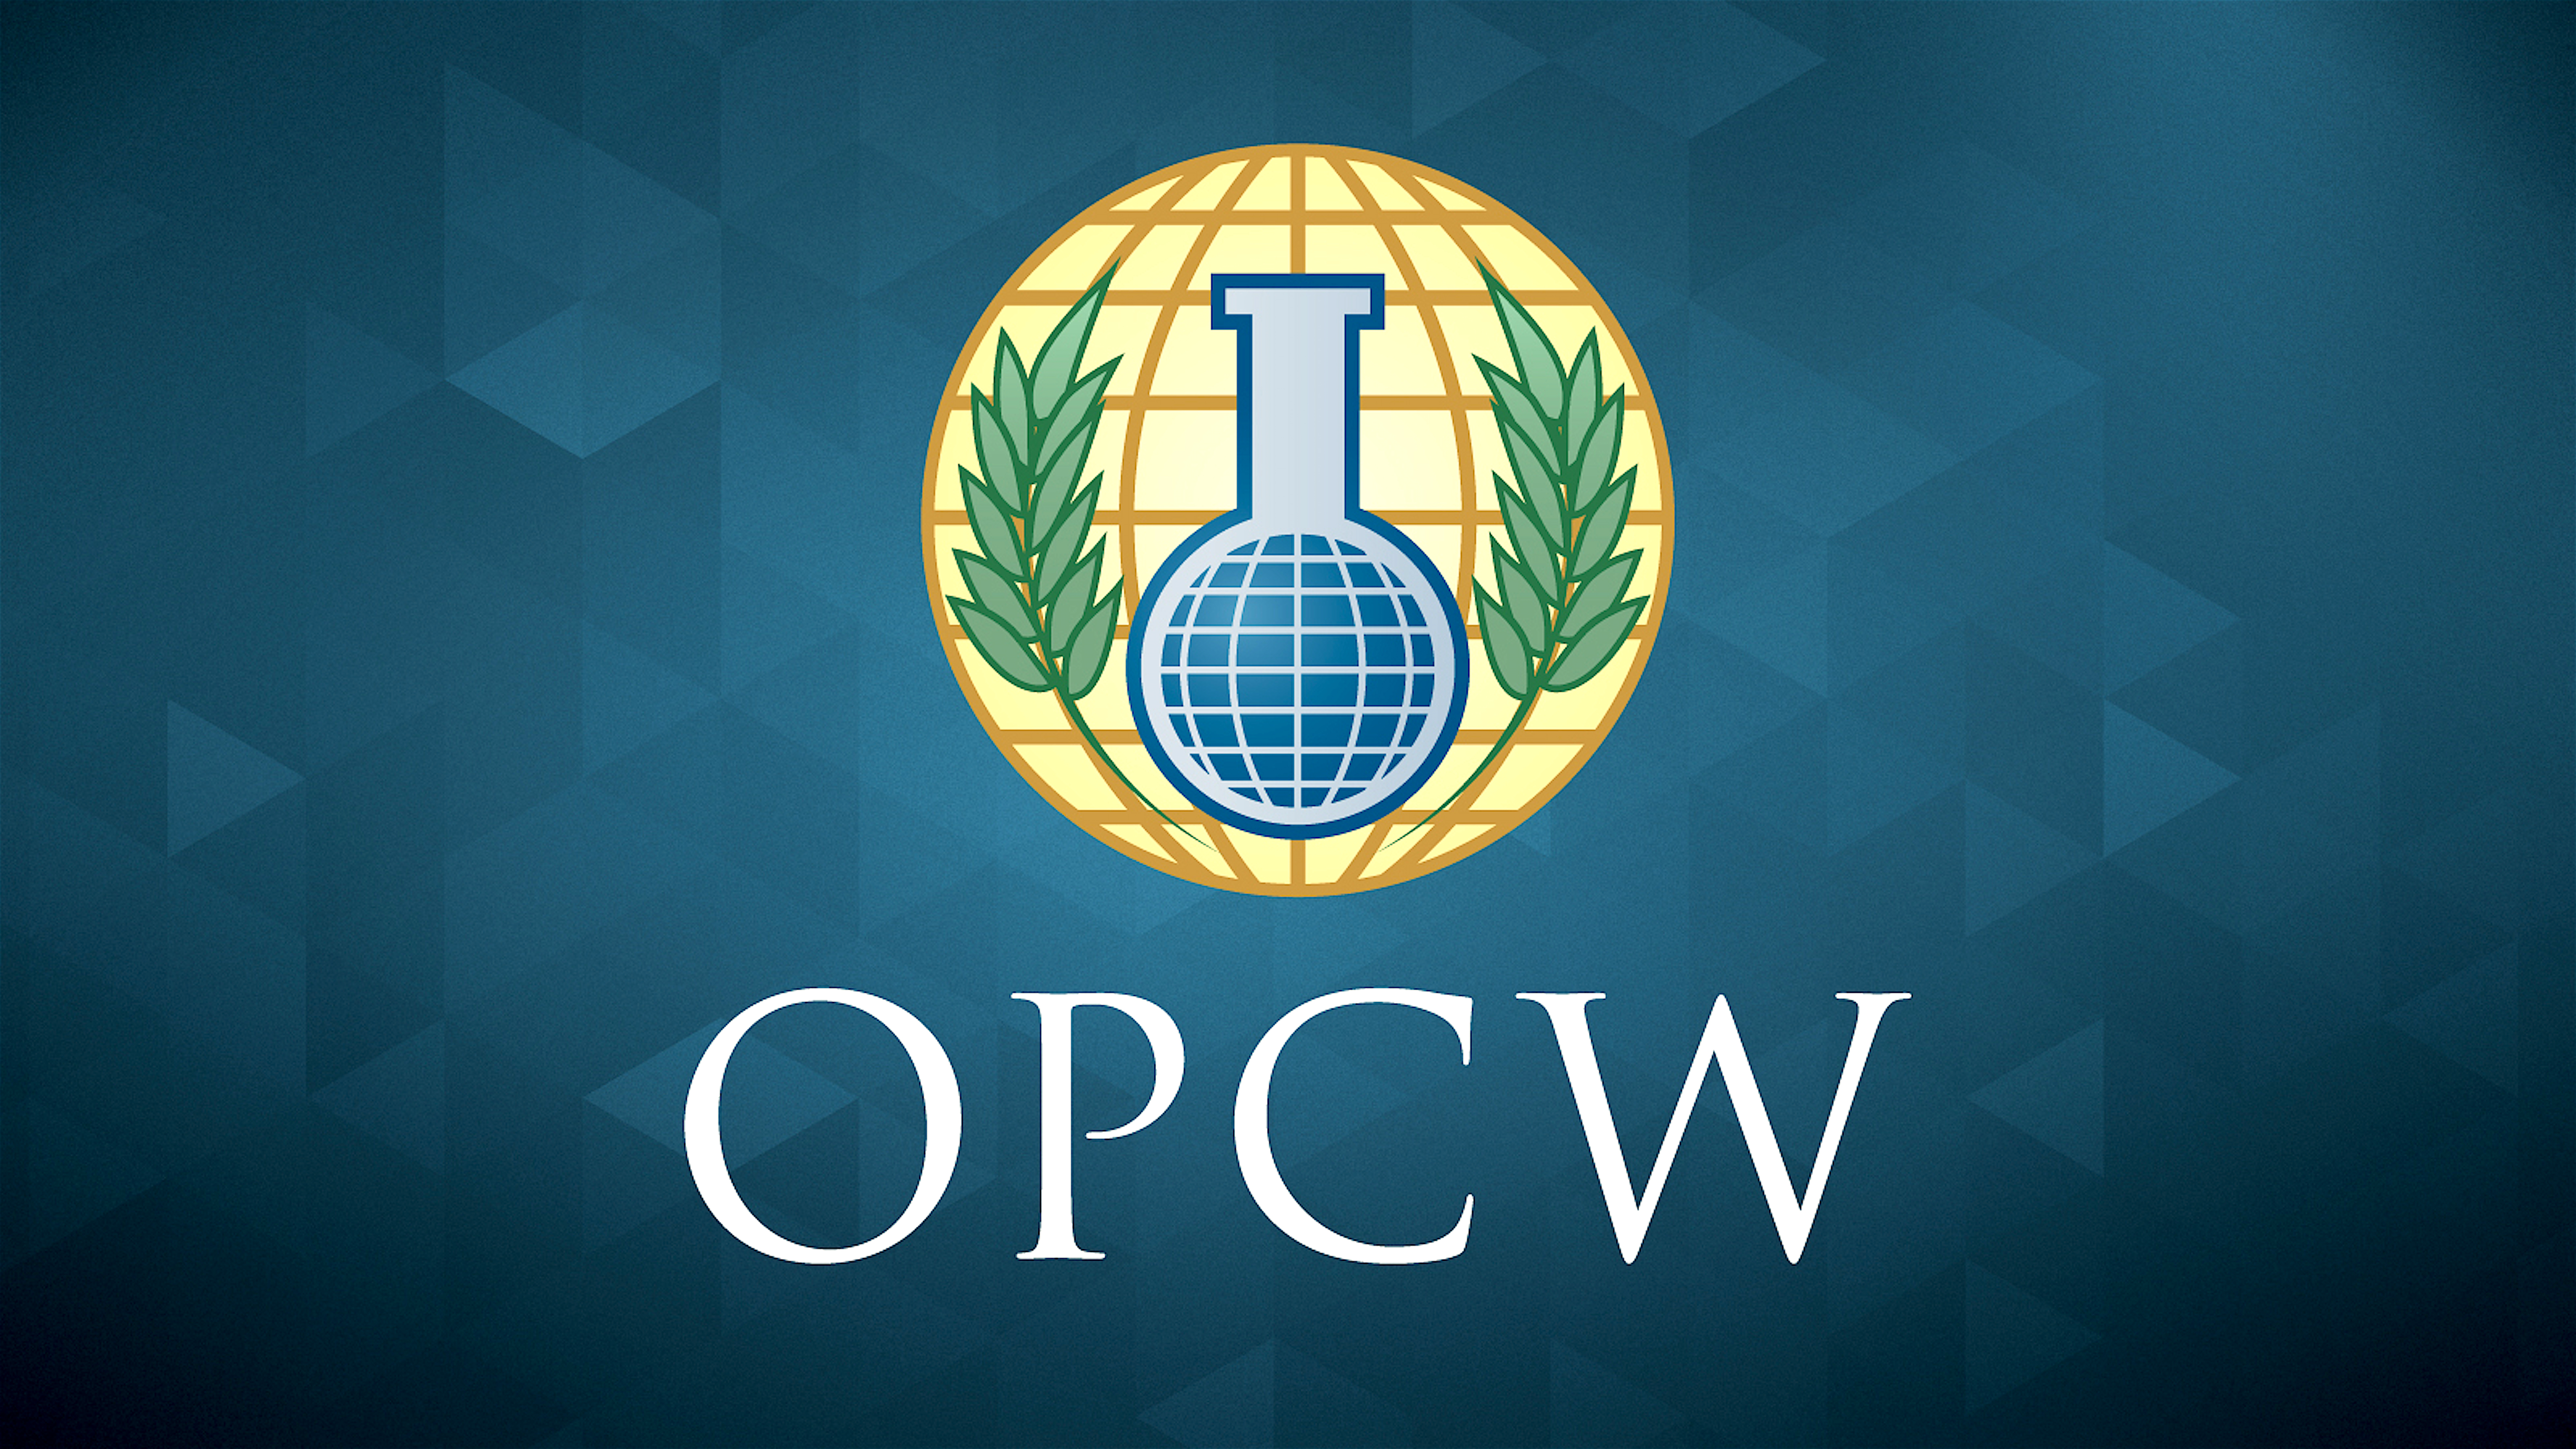 OPCW, Organisation for the Prohibition of Chemical Weapons (foto opcw.org)